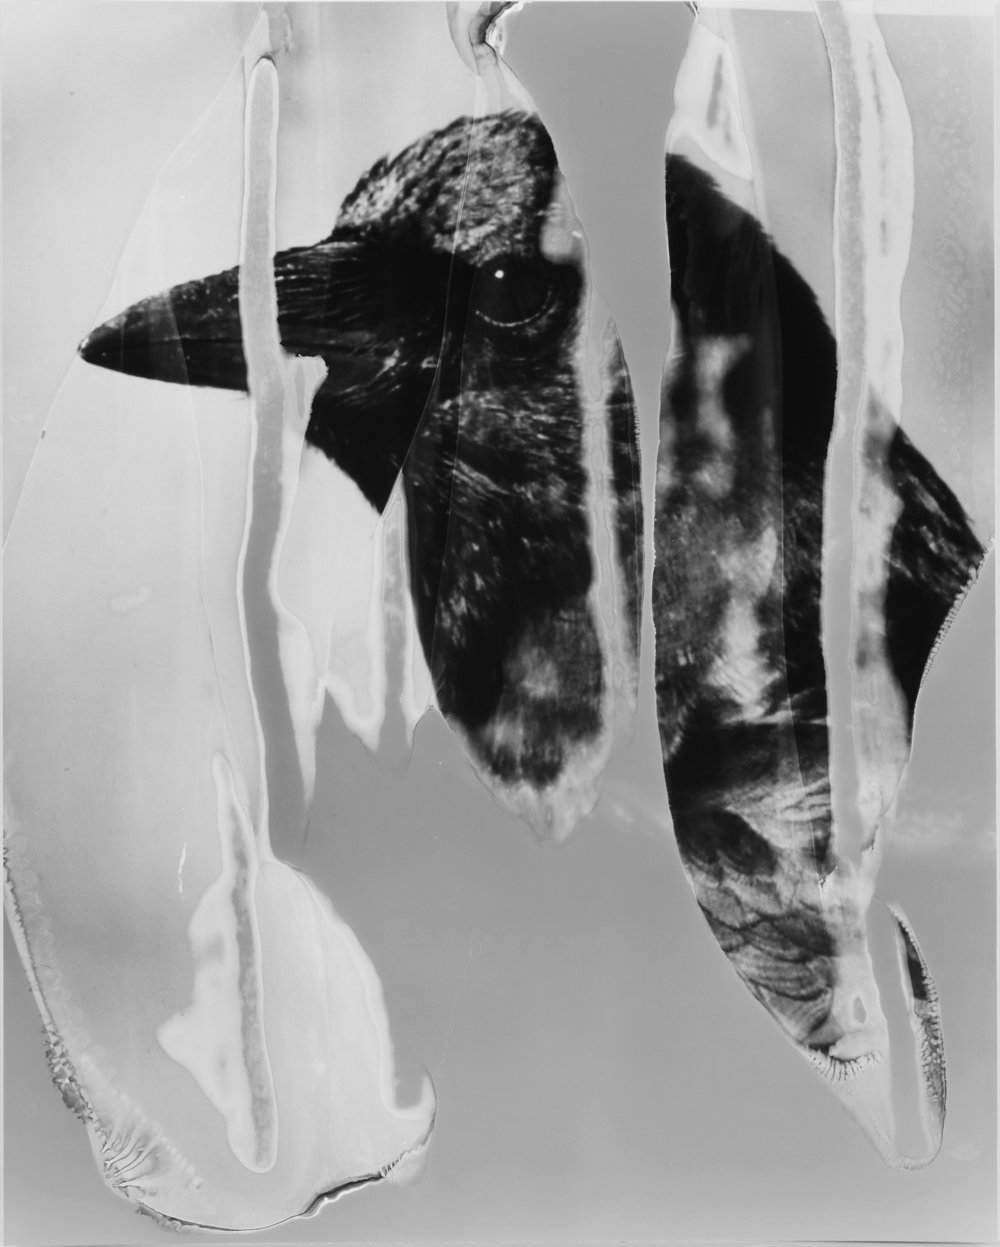 Image © Eileen Quinlan.   The Crow  , 2016. Gelatin silver print, 25 x 20 inches (63.5 x 50.8 cm). Courtesy of Miguel Abreu Gallery and the artist.